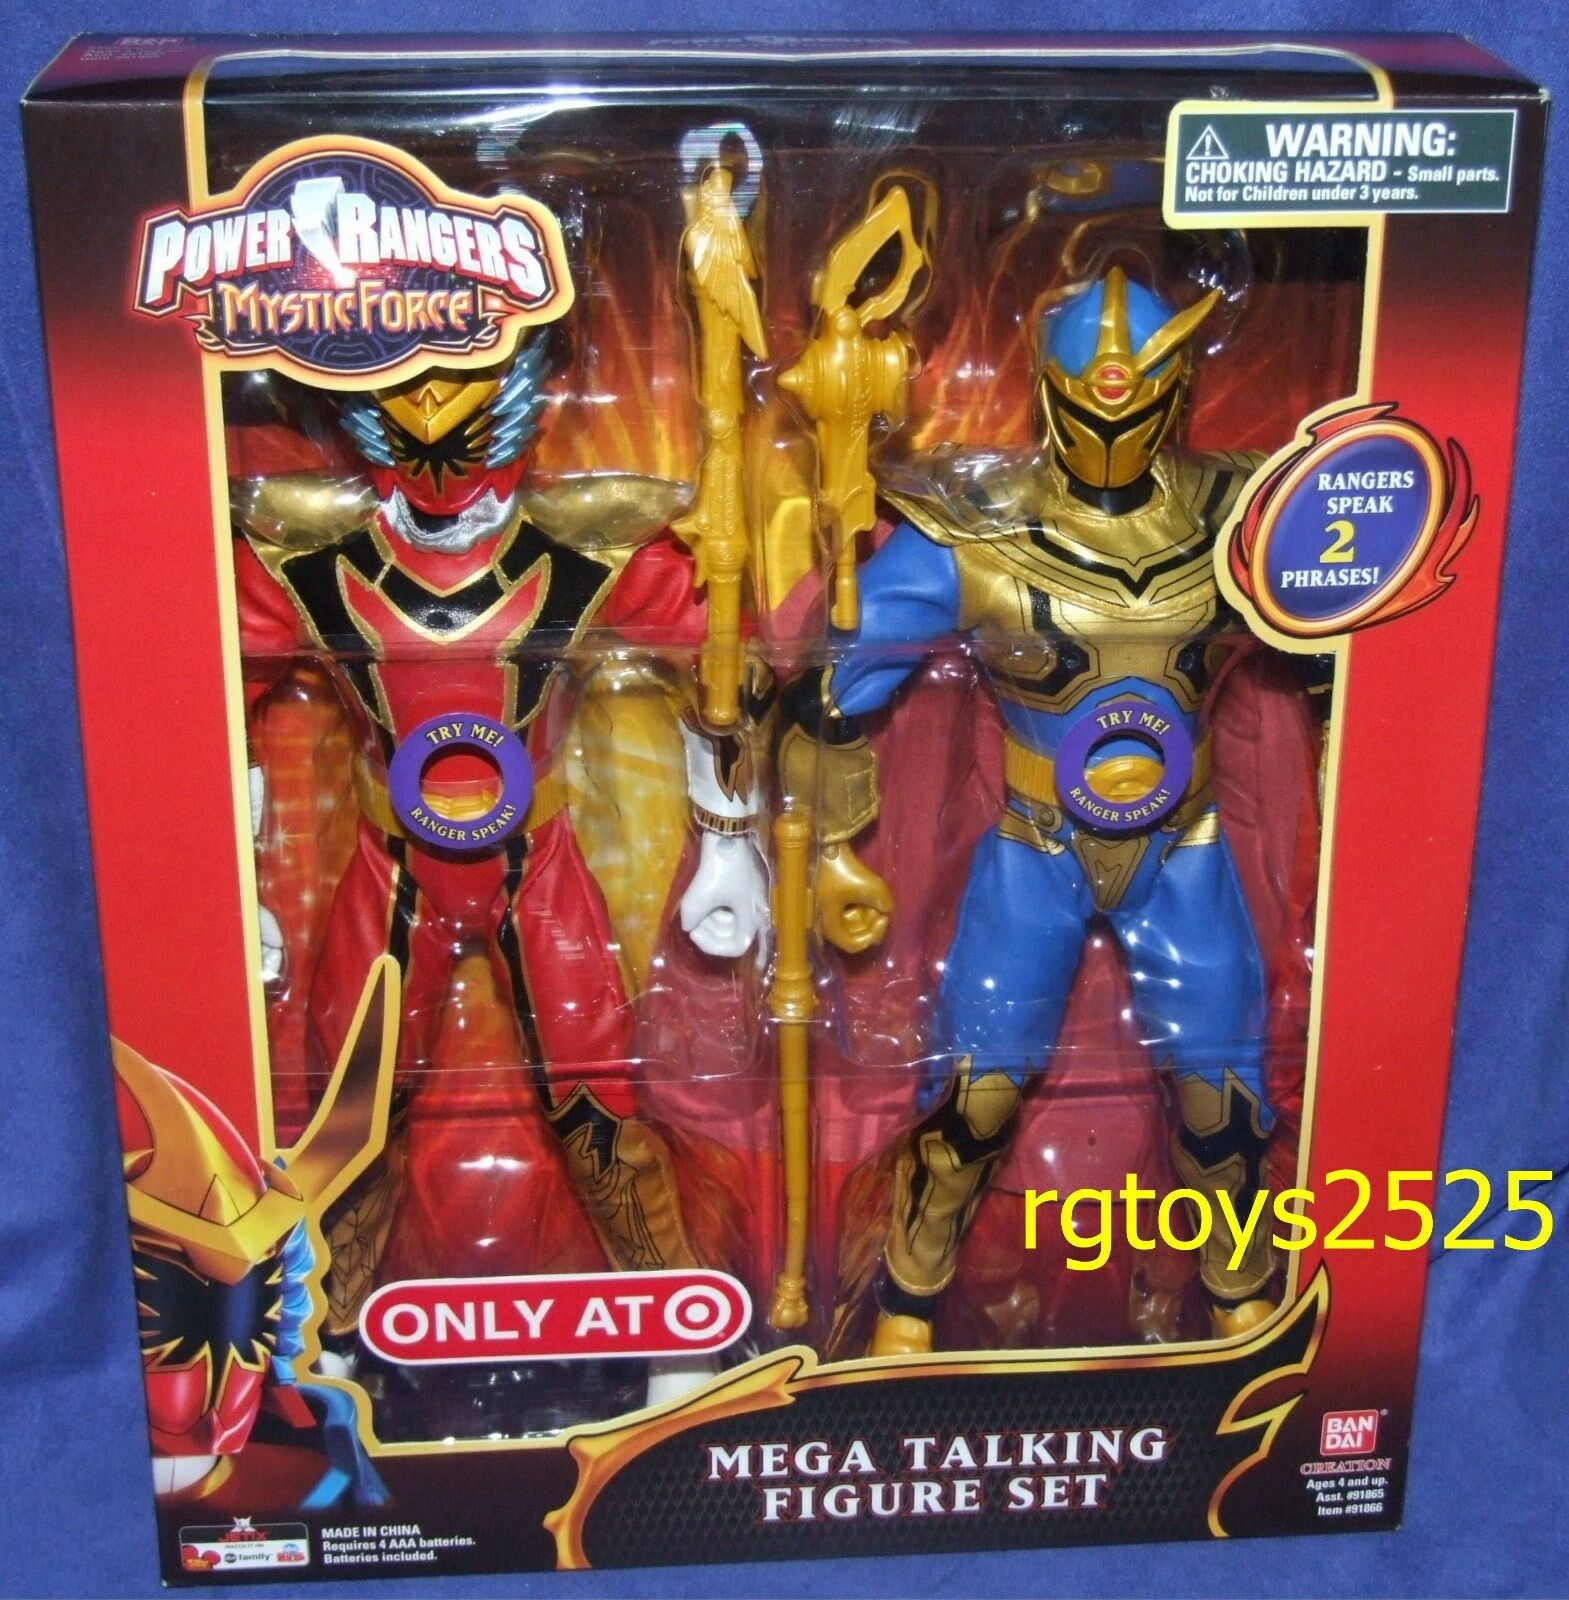 Power Rangers Mystic Force rosso Ranger & Solaris Knight 12 New Mega Talking Set